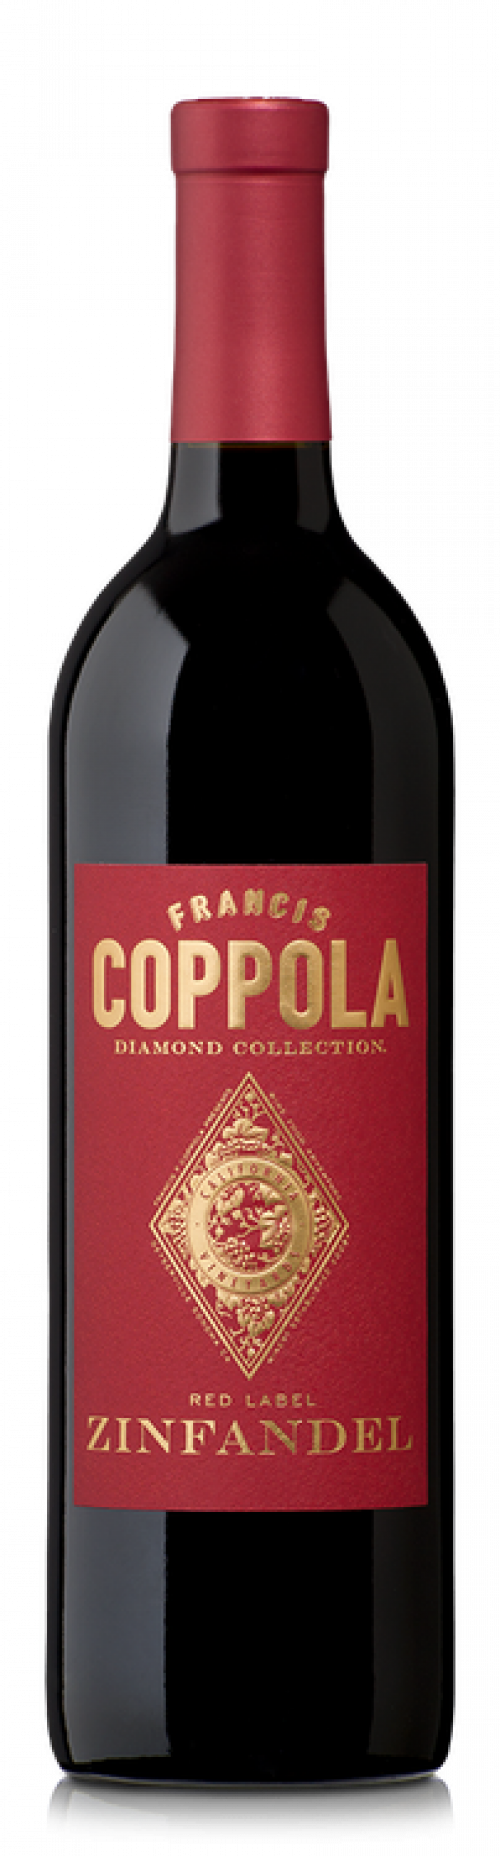 Coppola Diamond Collection Zinfandel 750Ml NV